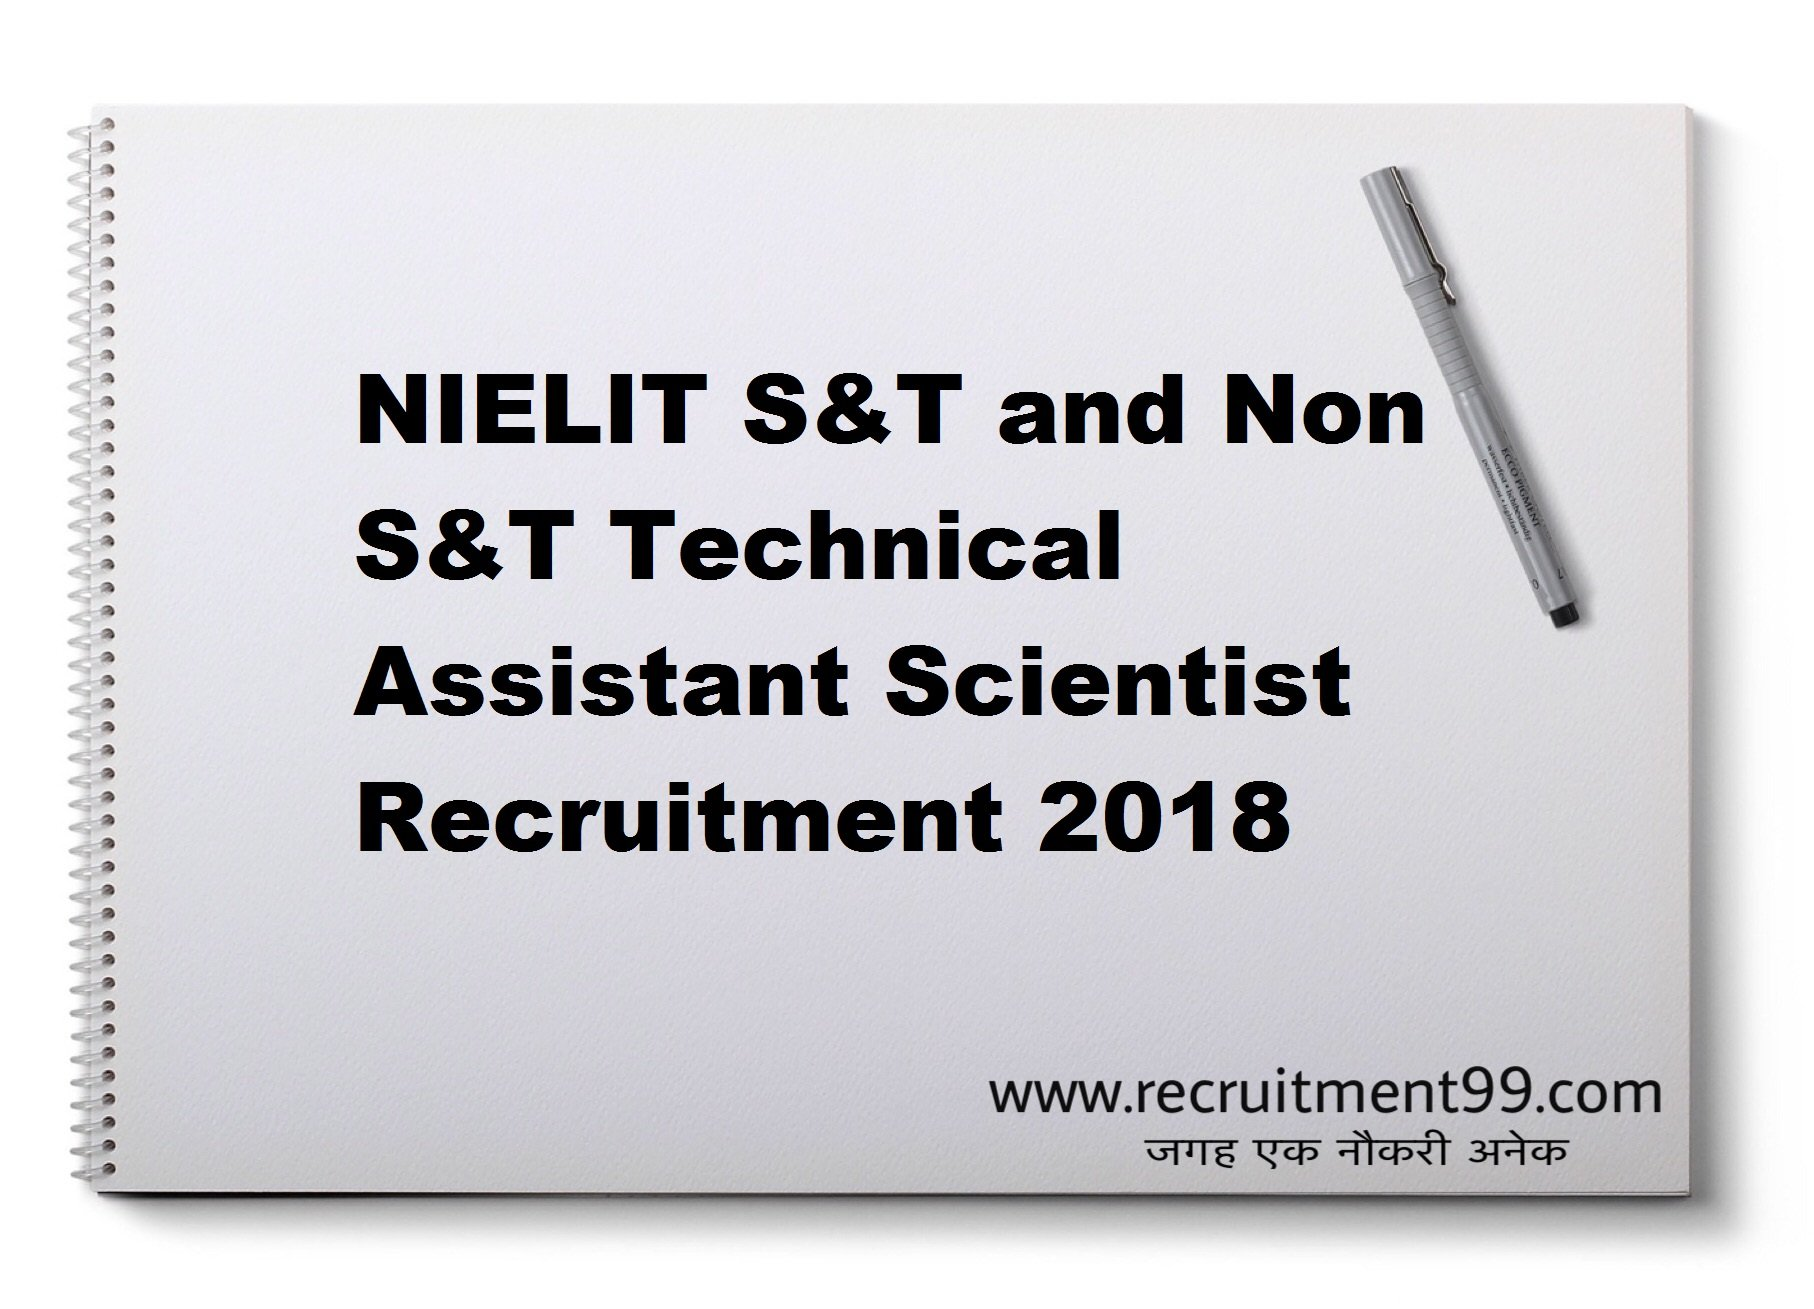 NIELIT S&T and Non S&T Technical Assistant Scientist Recruitment Admit Card Result 2018